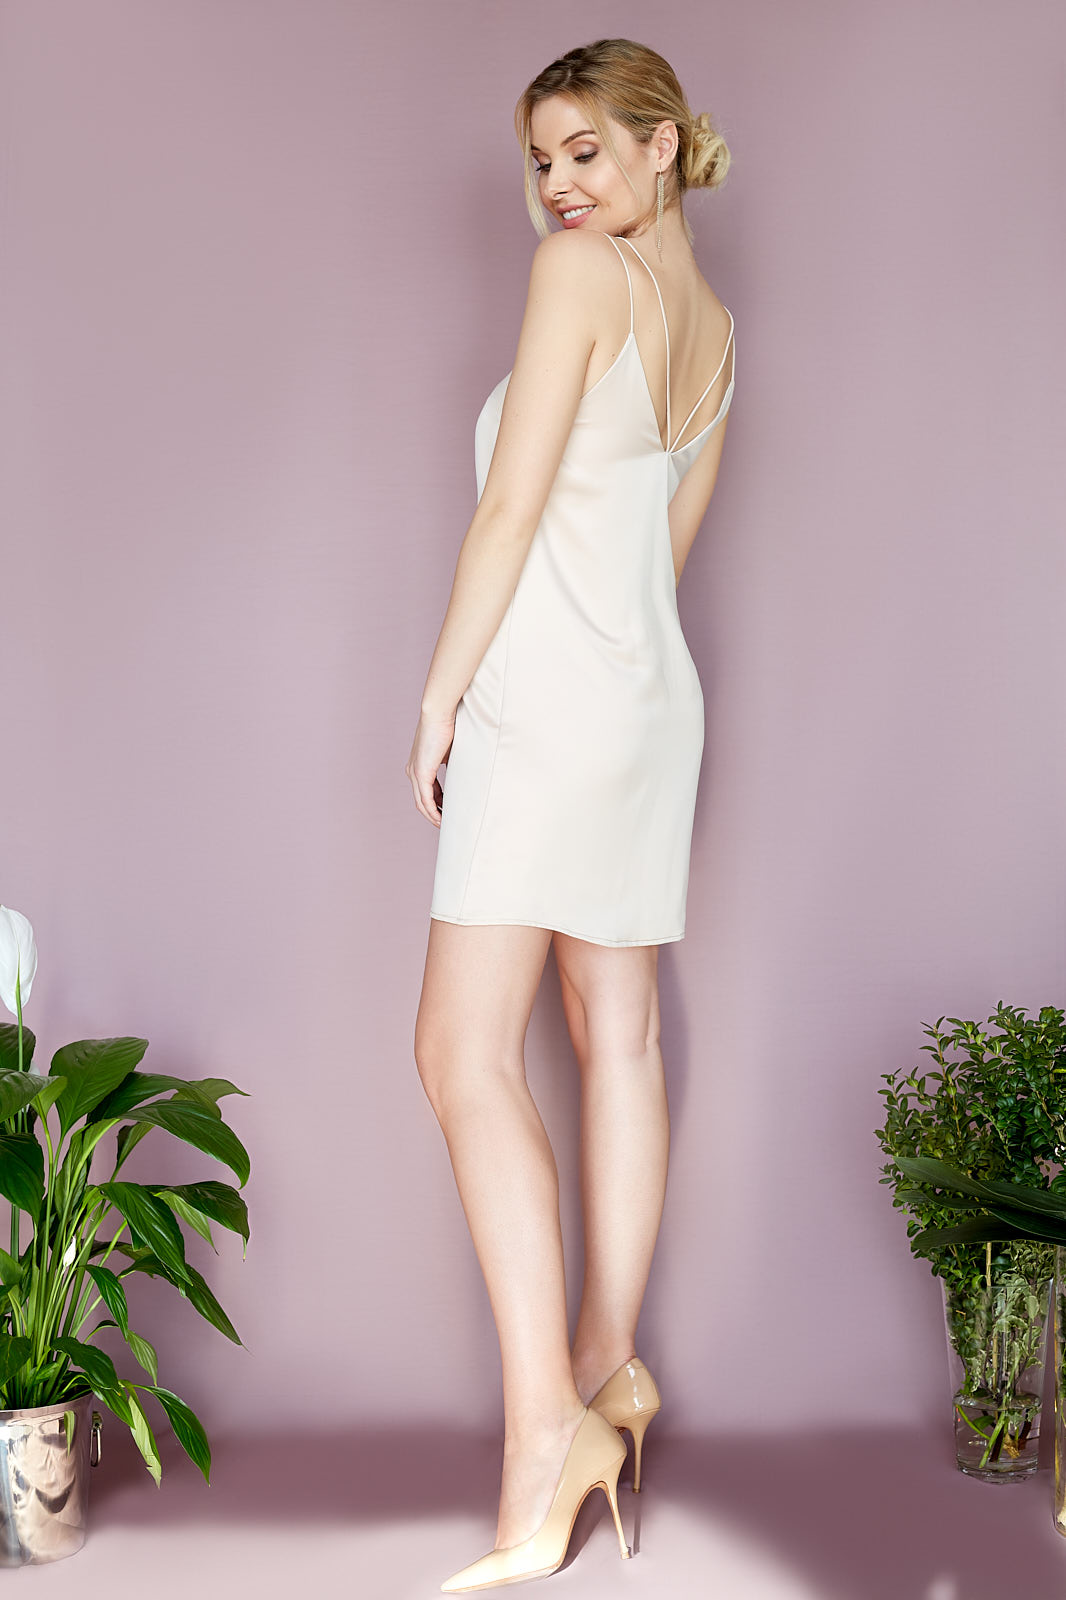 Rose Nude Party Dress  Party Dress in Rose Nude with Double Ultra-Thin Spaghetti Straps